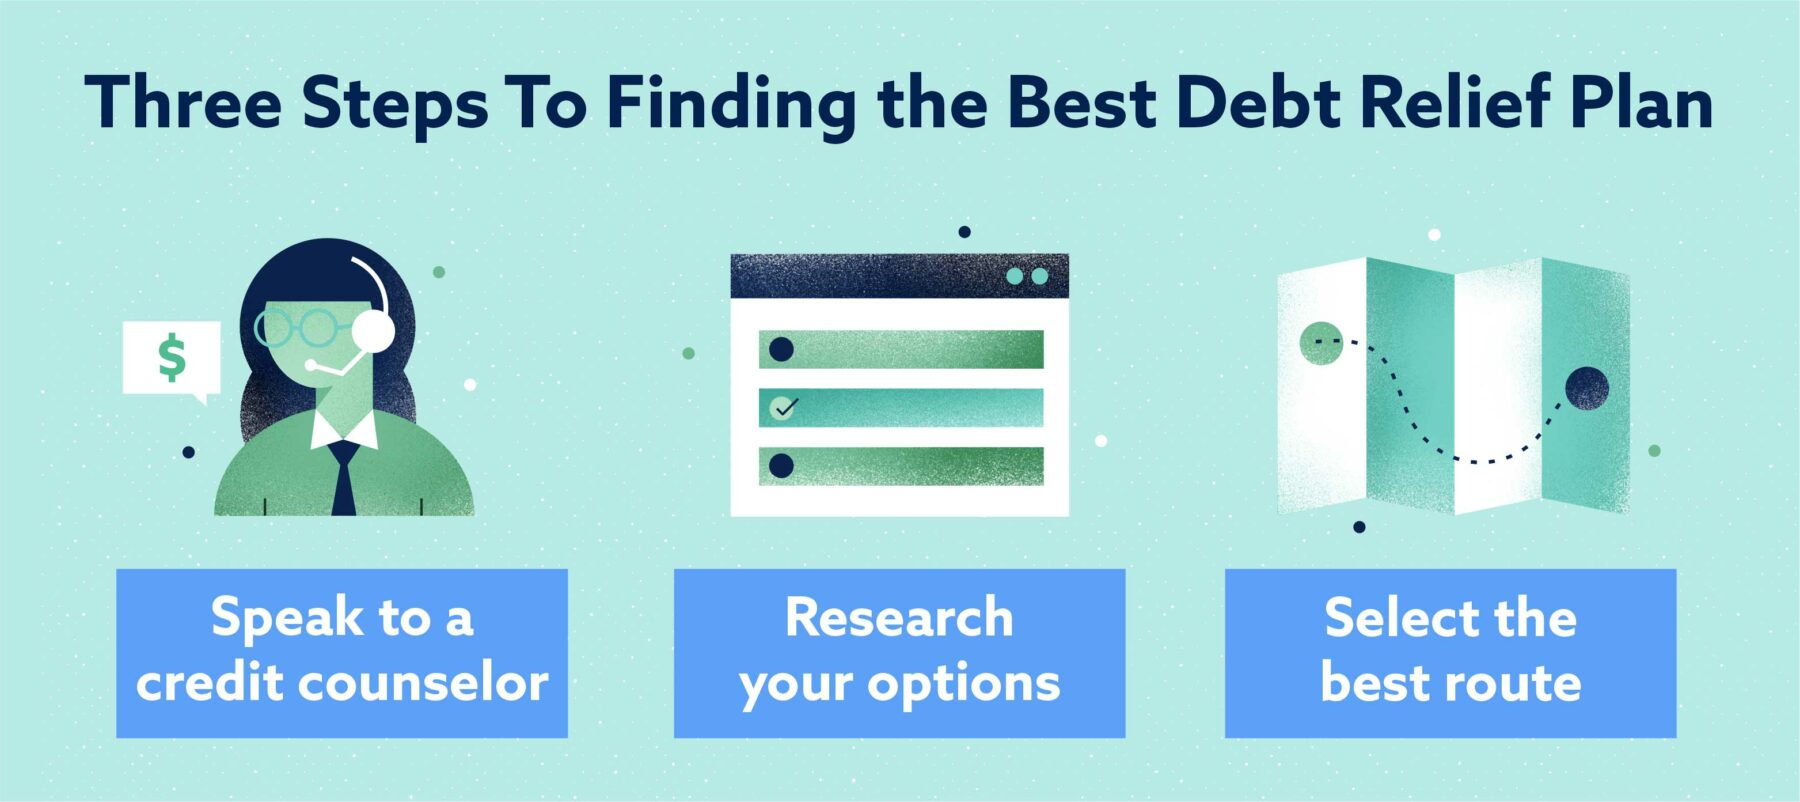 Three Steps to Finding the Best Debt Relief Plan Image